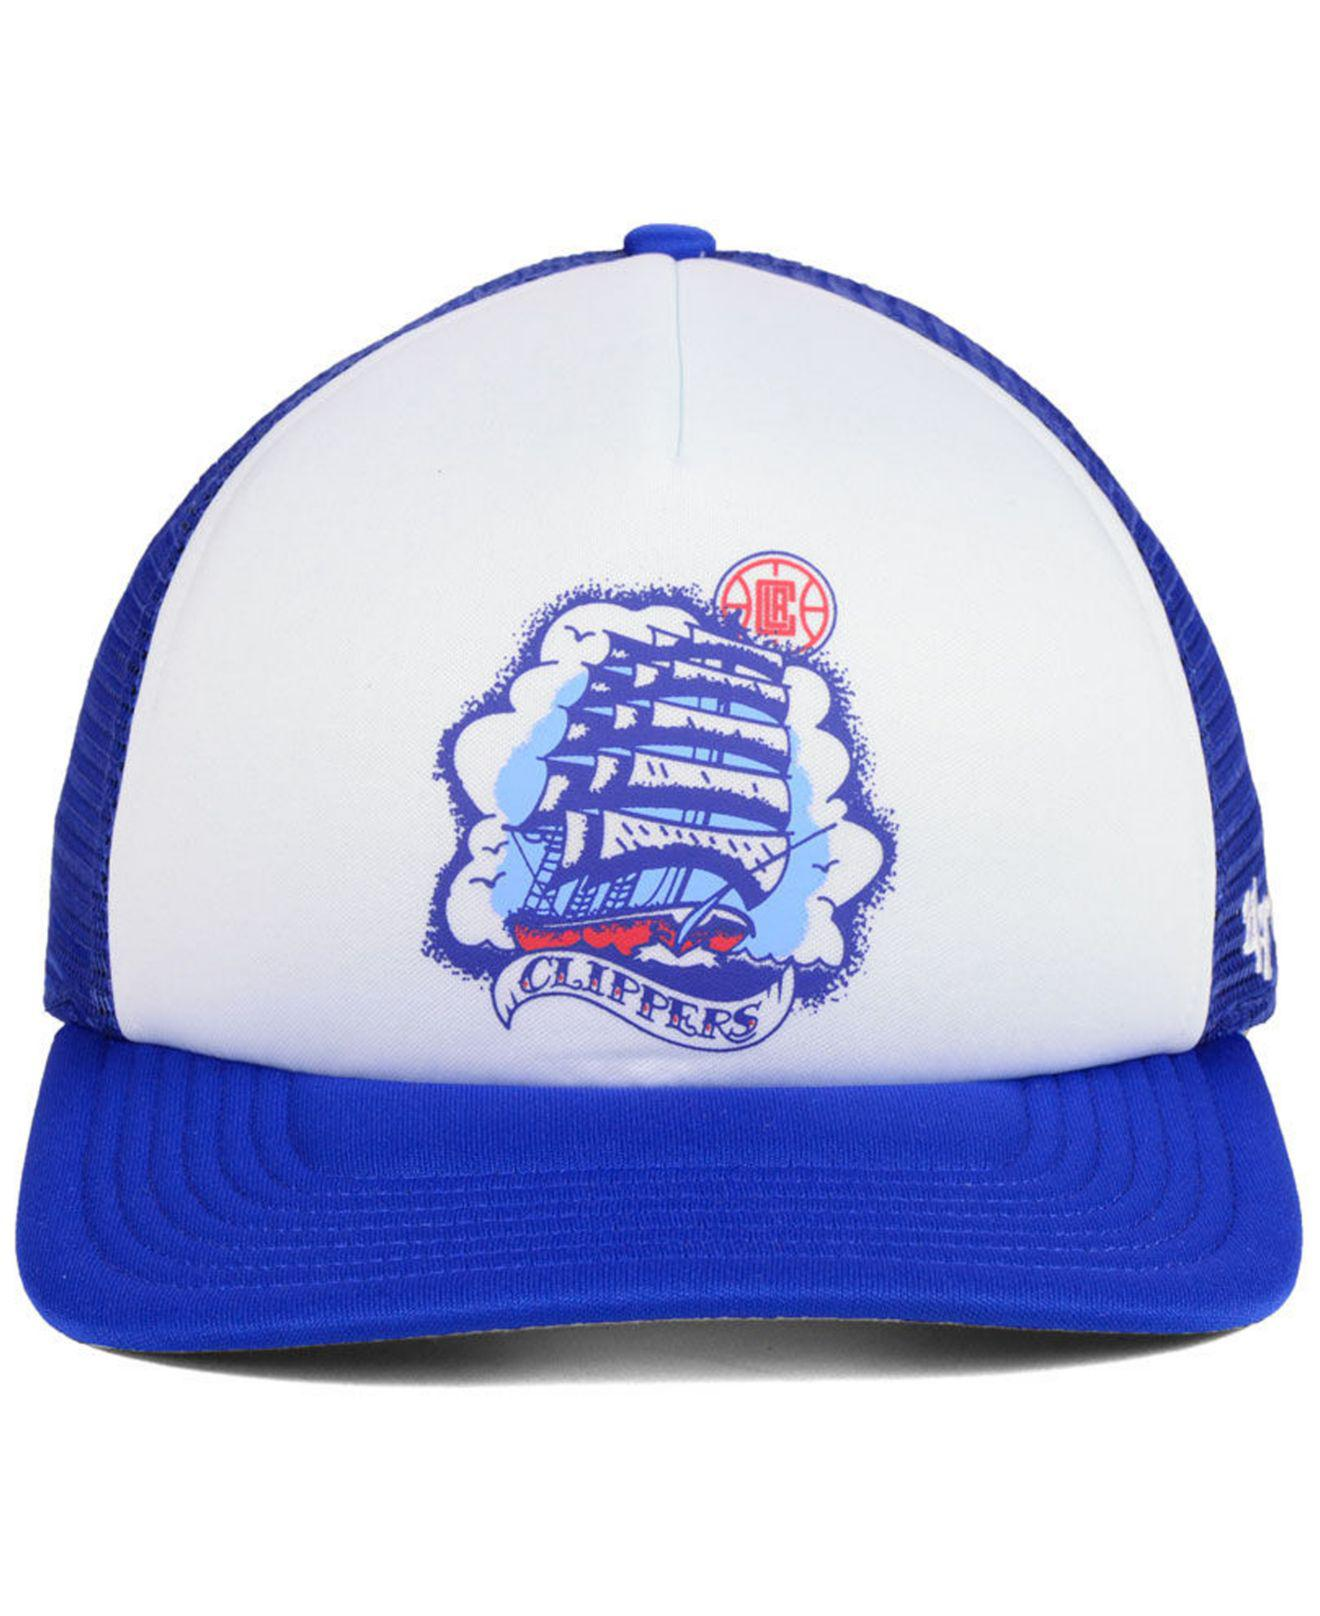 the best attitude ce18b c70a4 ... reduced lyst 47 brand los angeles clippers region mesh mvp cap in blue  for men f8b0c